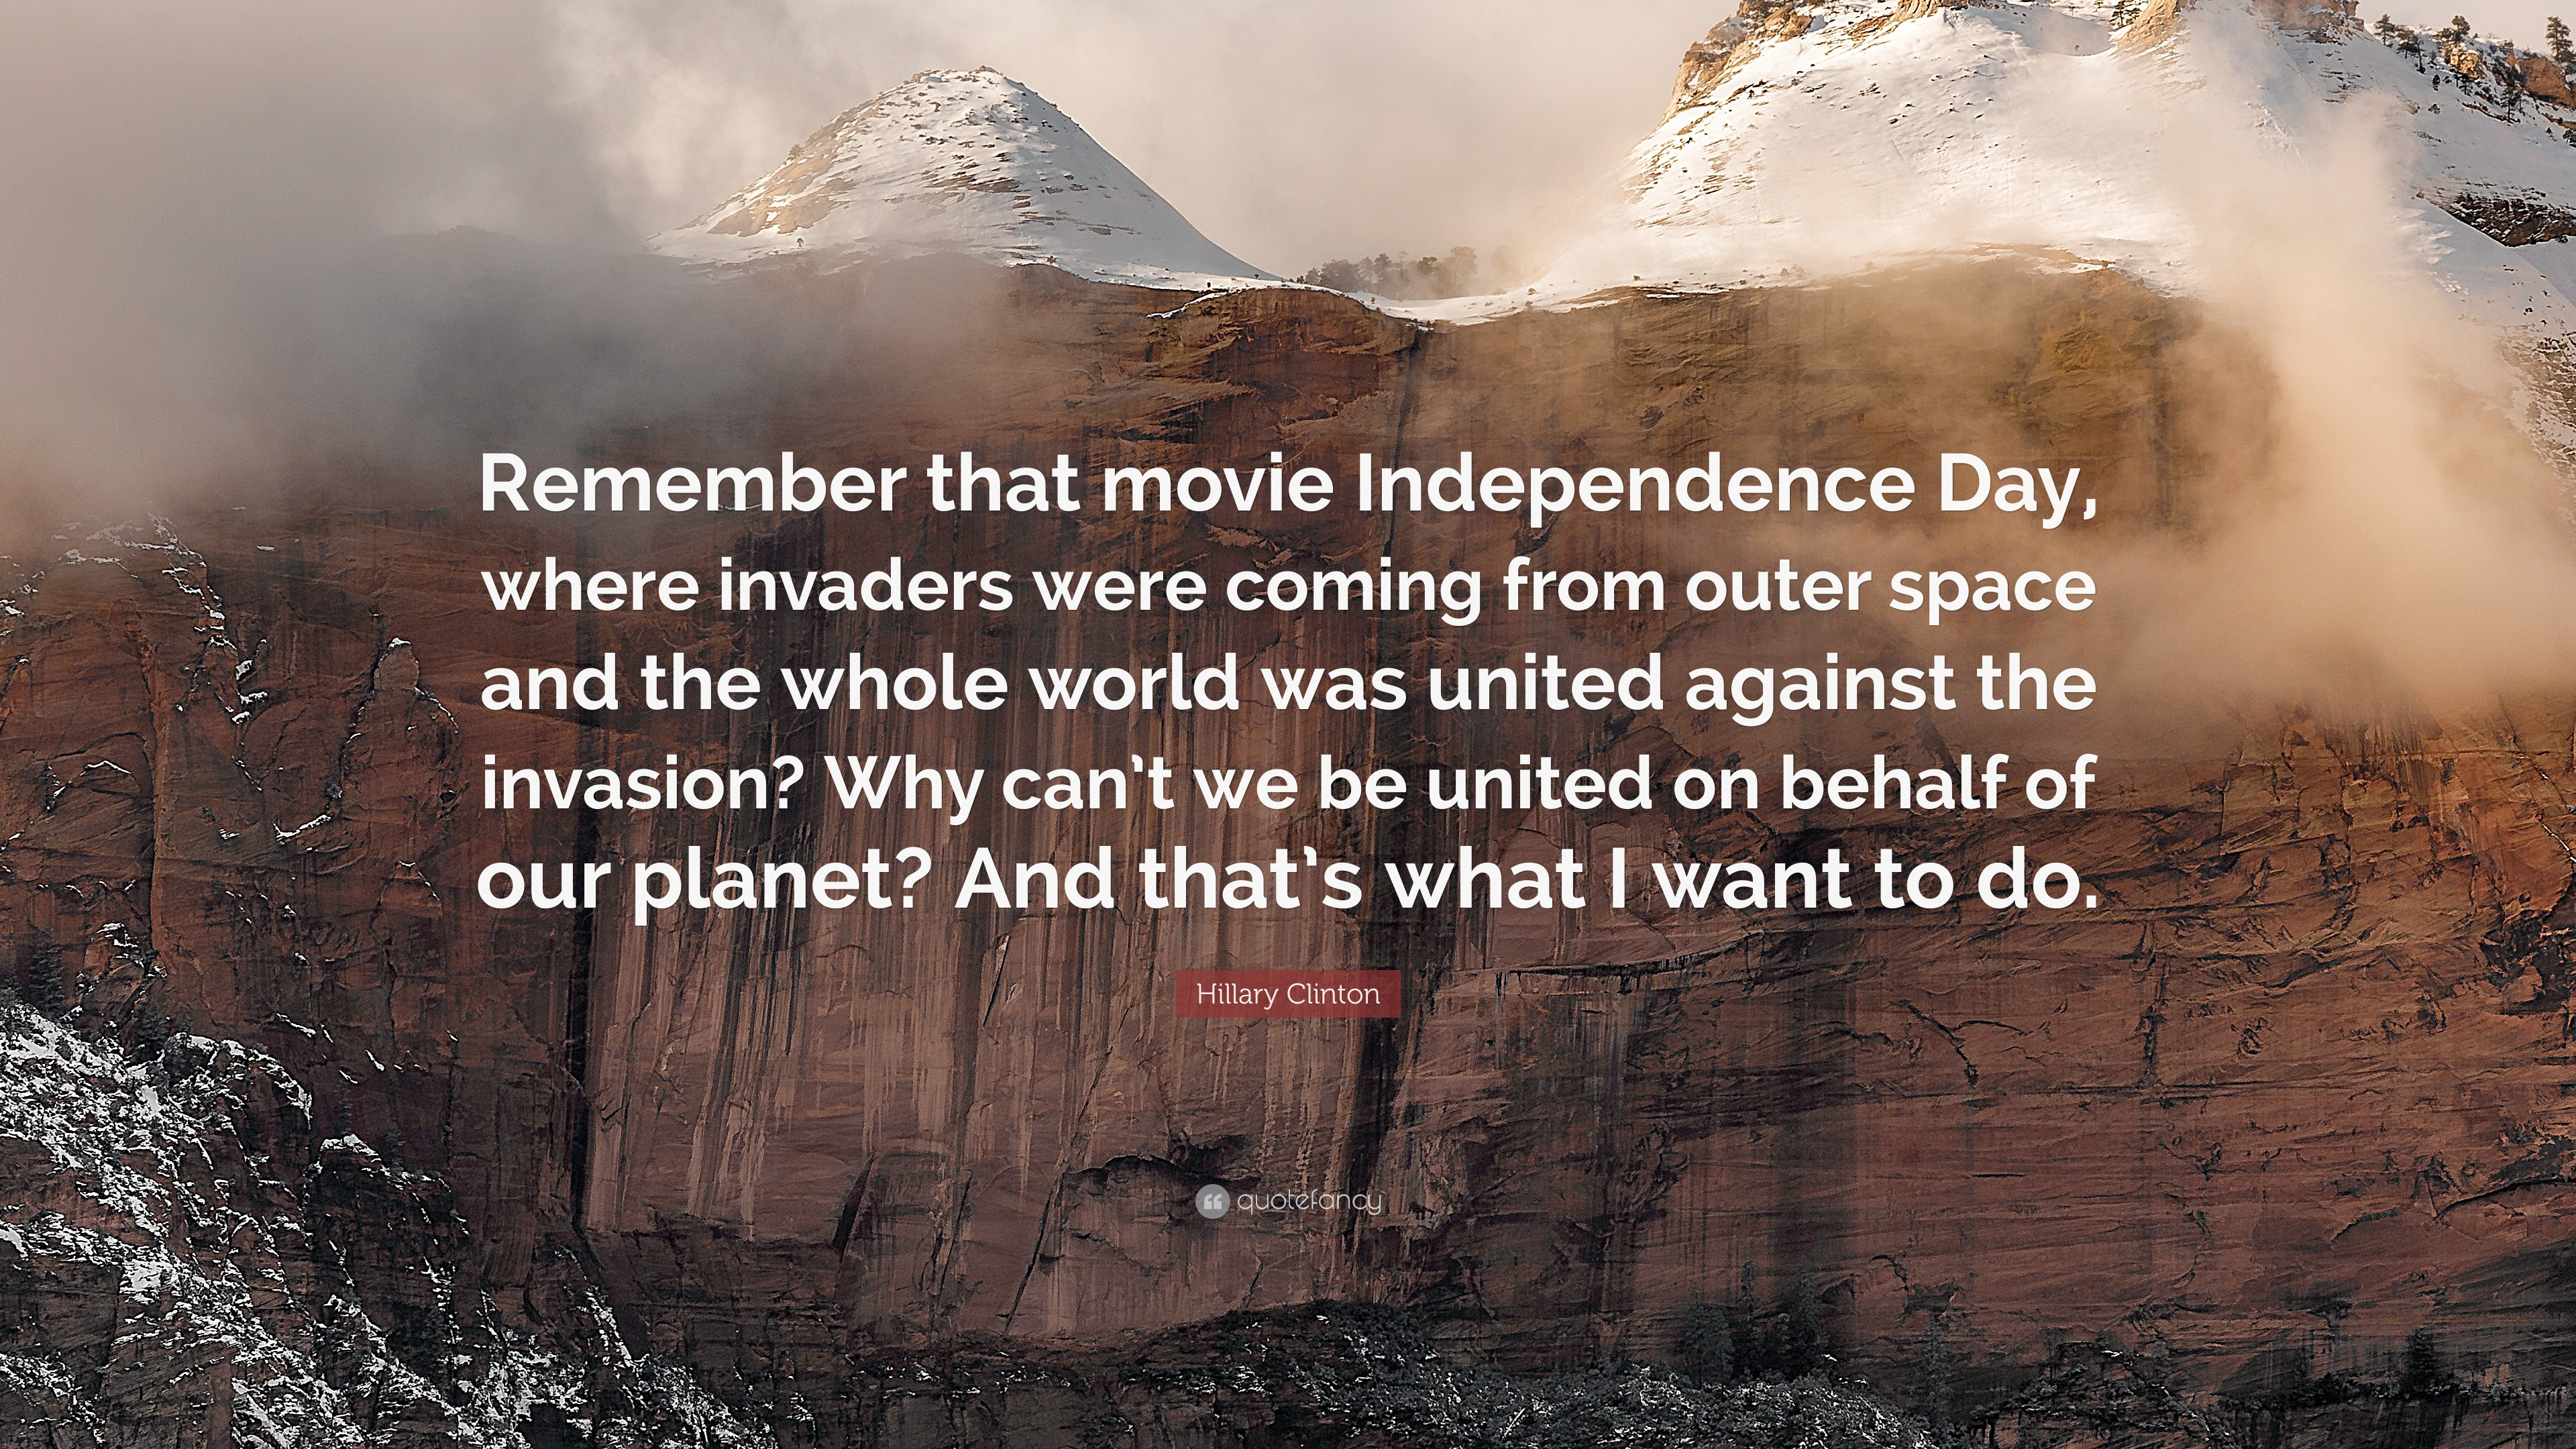 Beautiful Wallpaper Movie Independence Day - 1871933-Hillary-Clinton-Quote-Remember-that-movie-Independence-Day-where  2018_712215.jpg